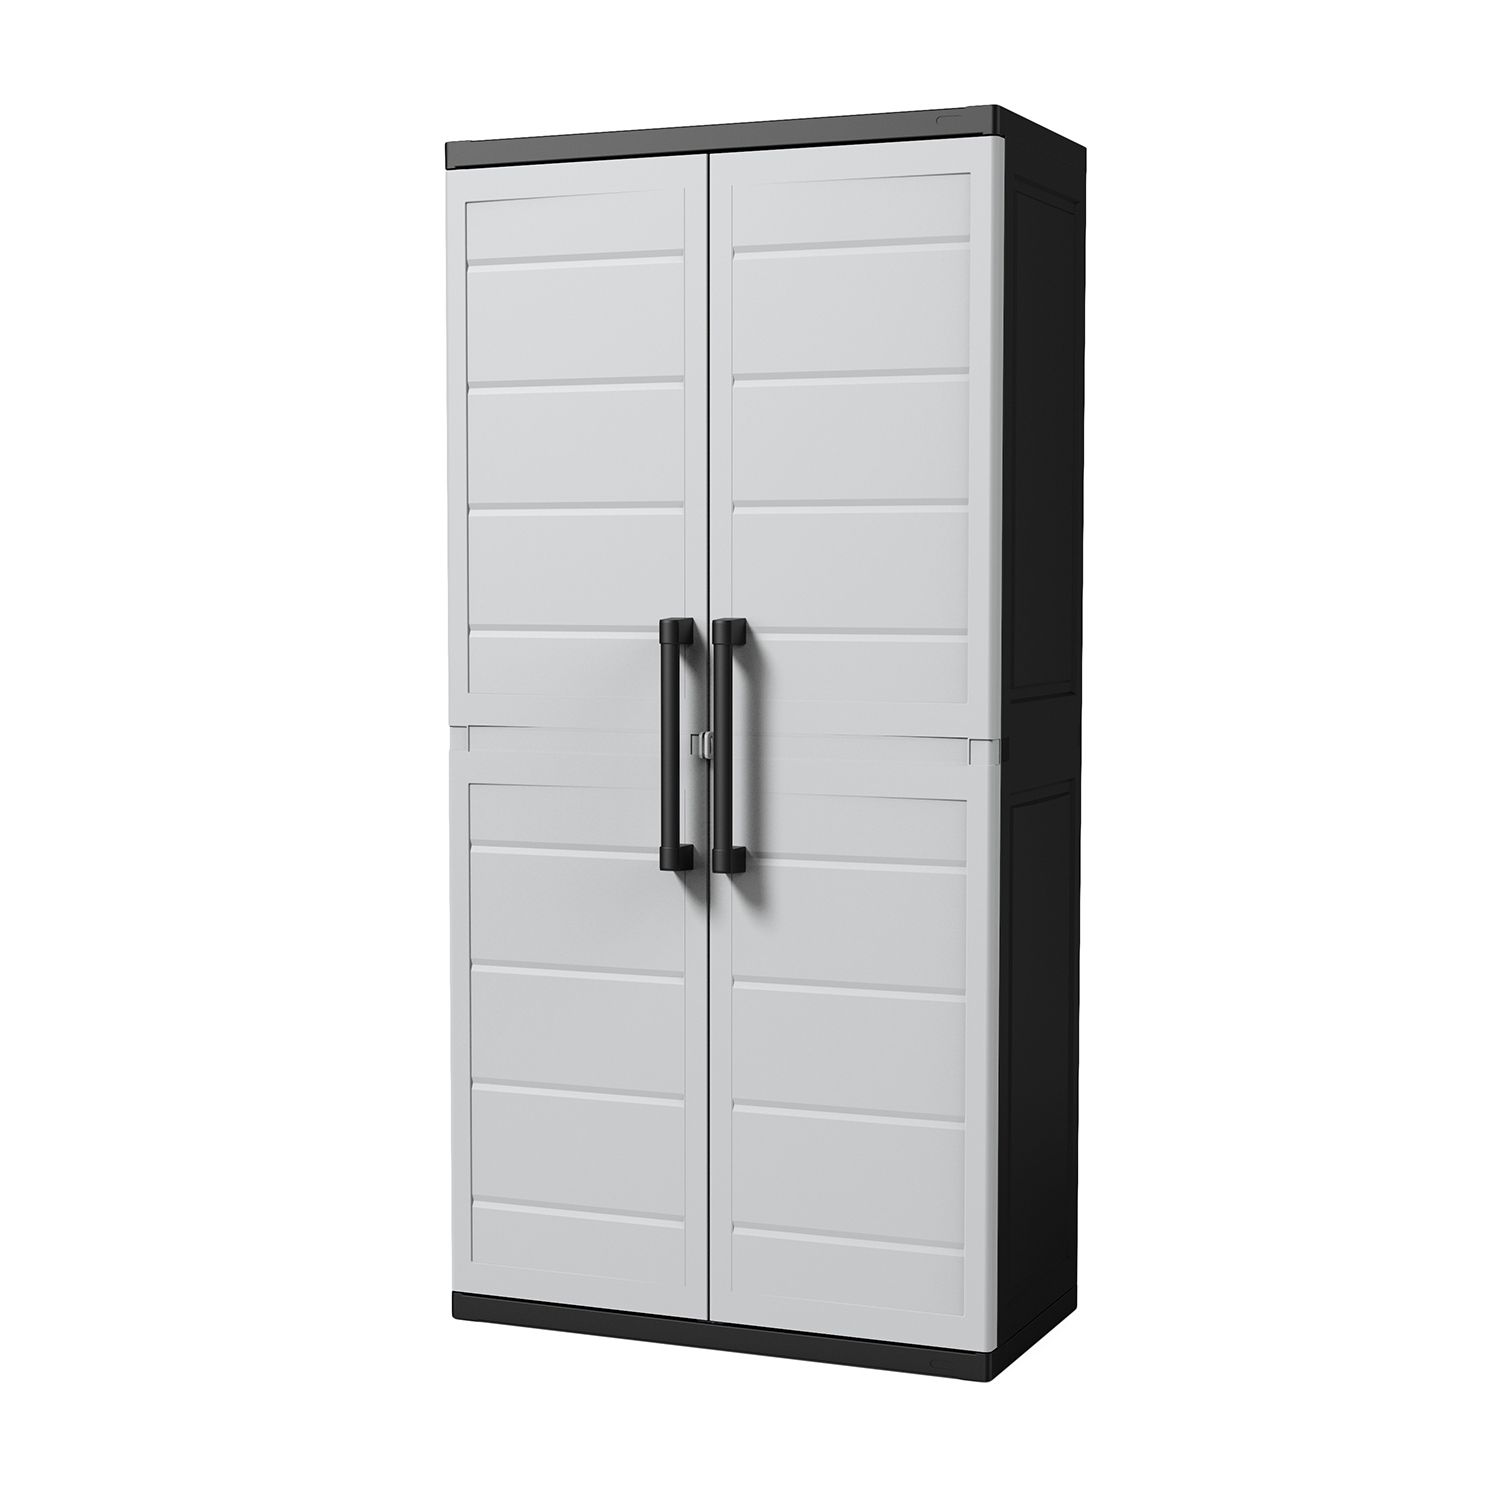 Keter XL Plus Utility Storage Cabinet With 4 Shelves